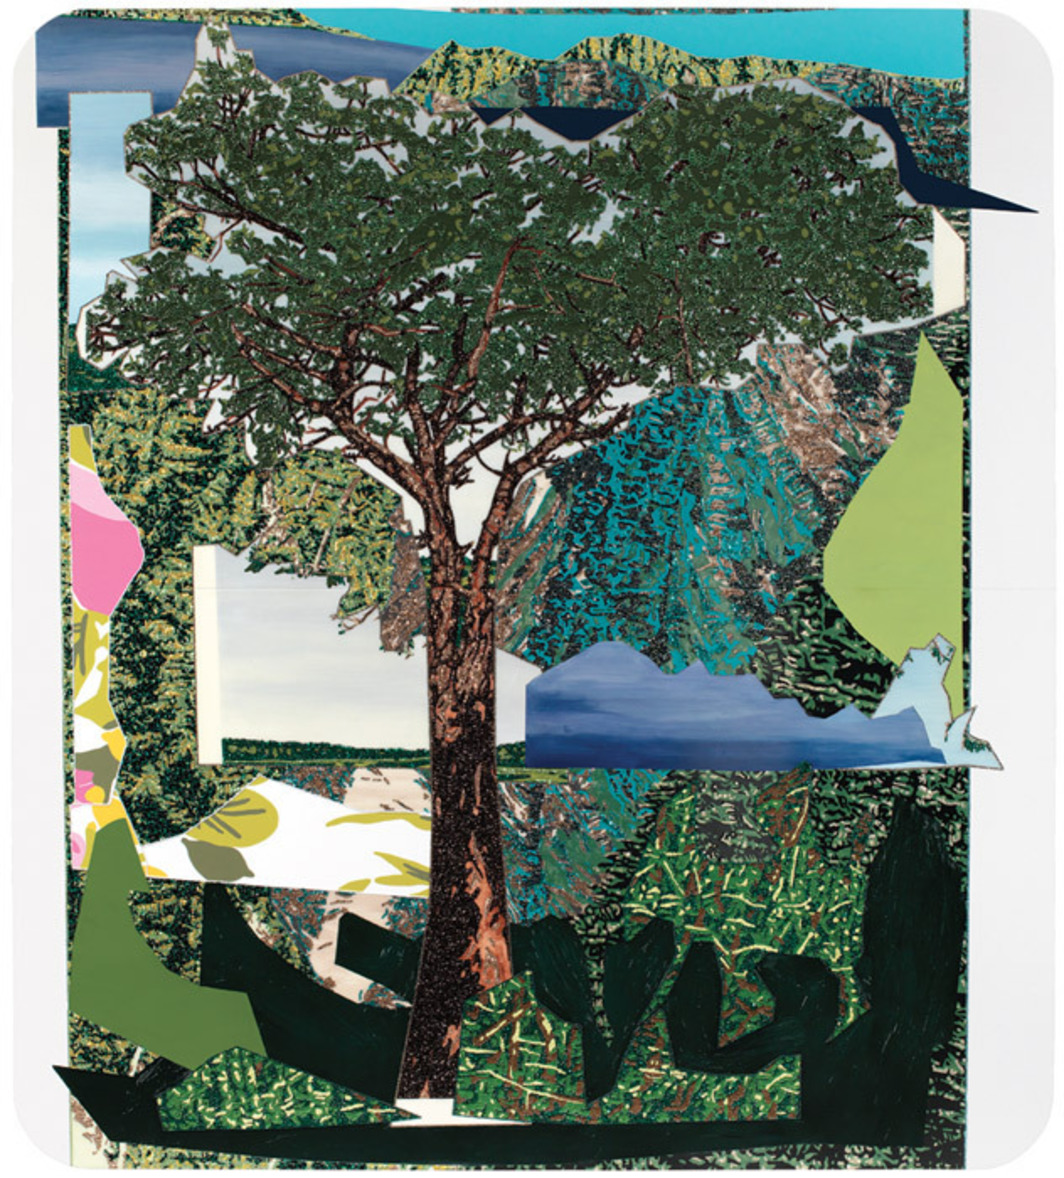 "Mickalene Thomas, Landscape with Tree, 2012, rhinestones, acrylic, oil, and enamel on wood panel, 100 x 90 x 2""."